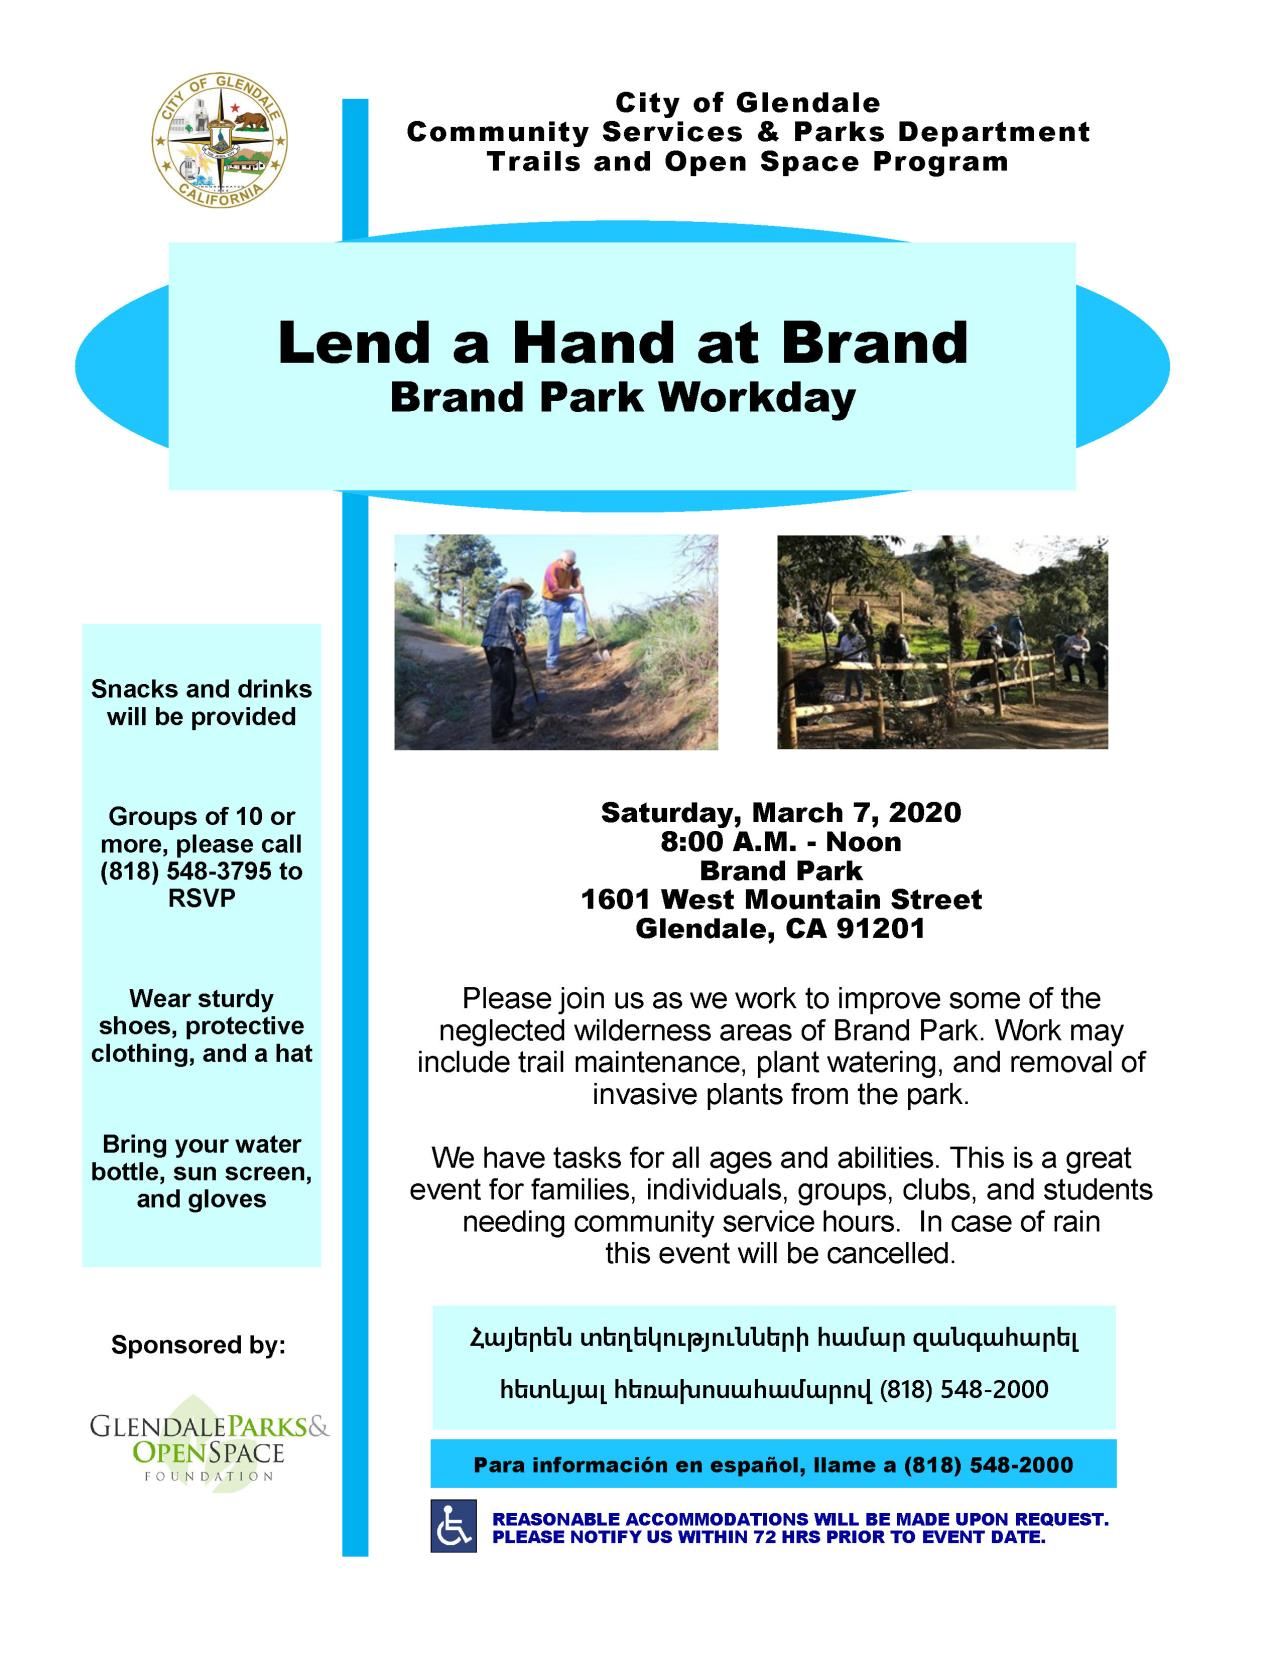 Lend a Hand at Brand Mar 7